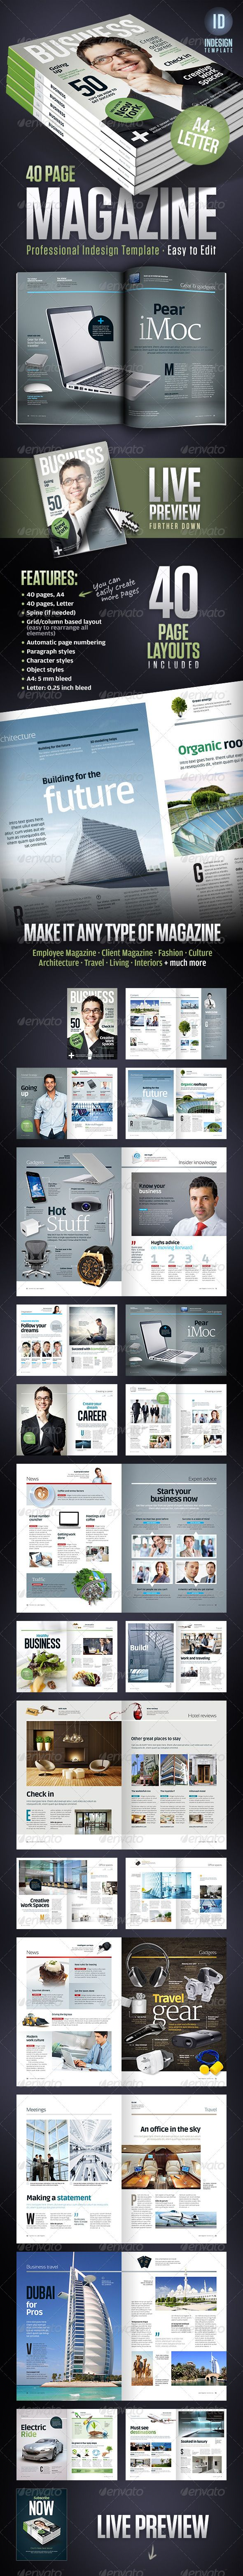 Business Magazine Template A4 + Letter - 40 pages